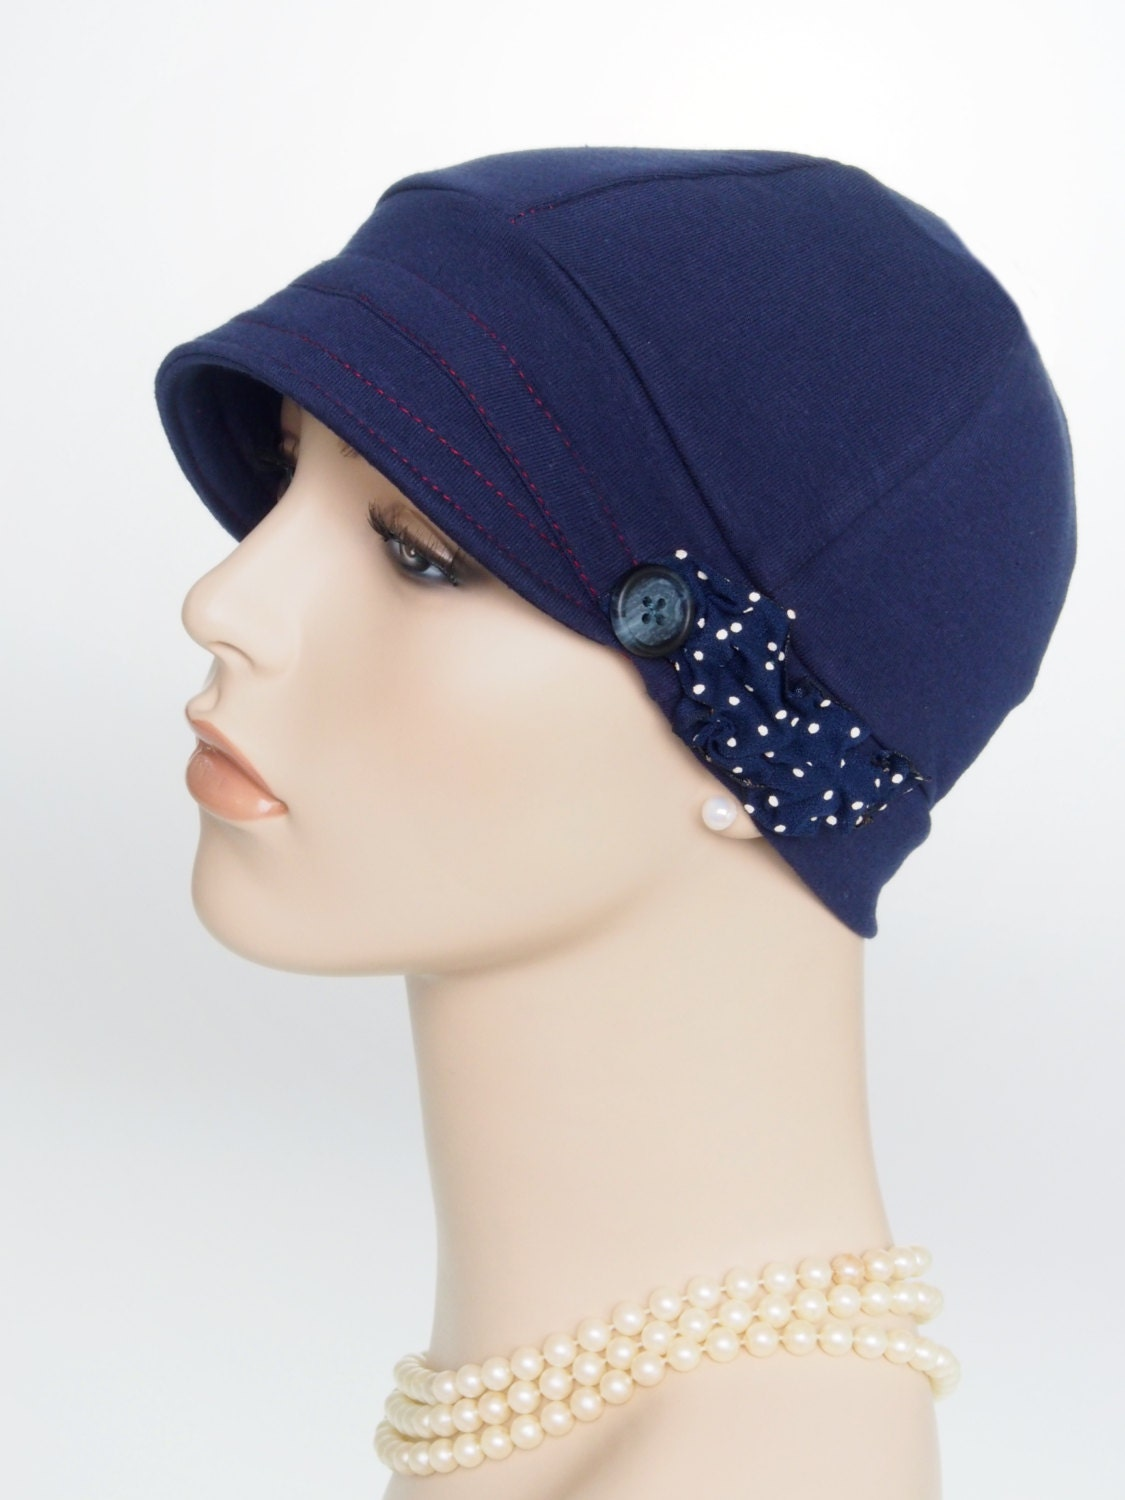 womens chemo cap for cancer hair loss lightweight cotton hat